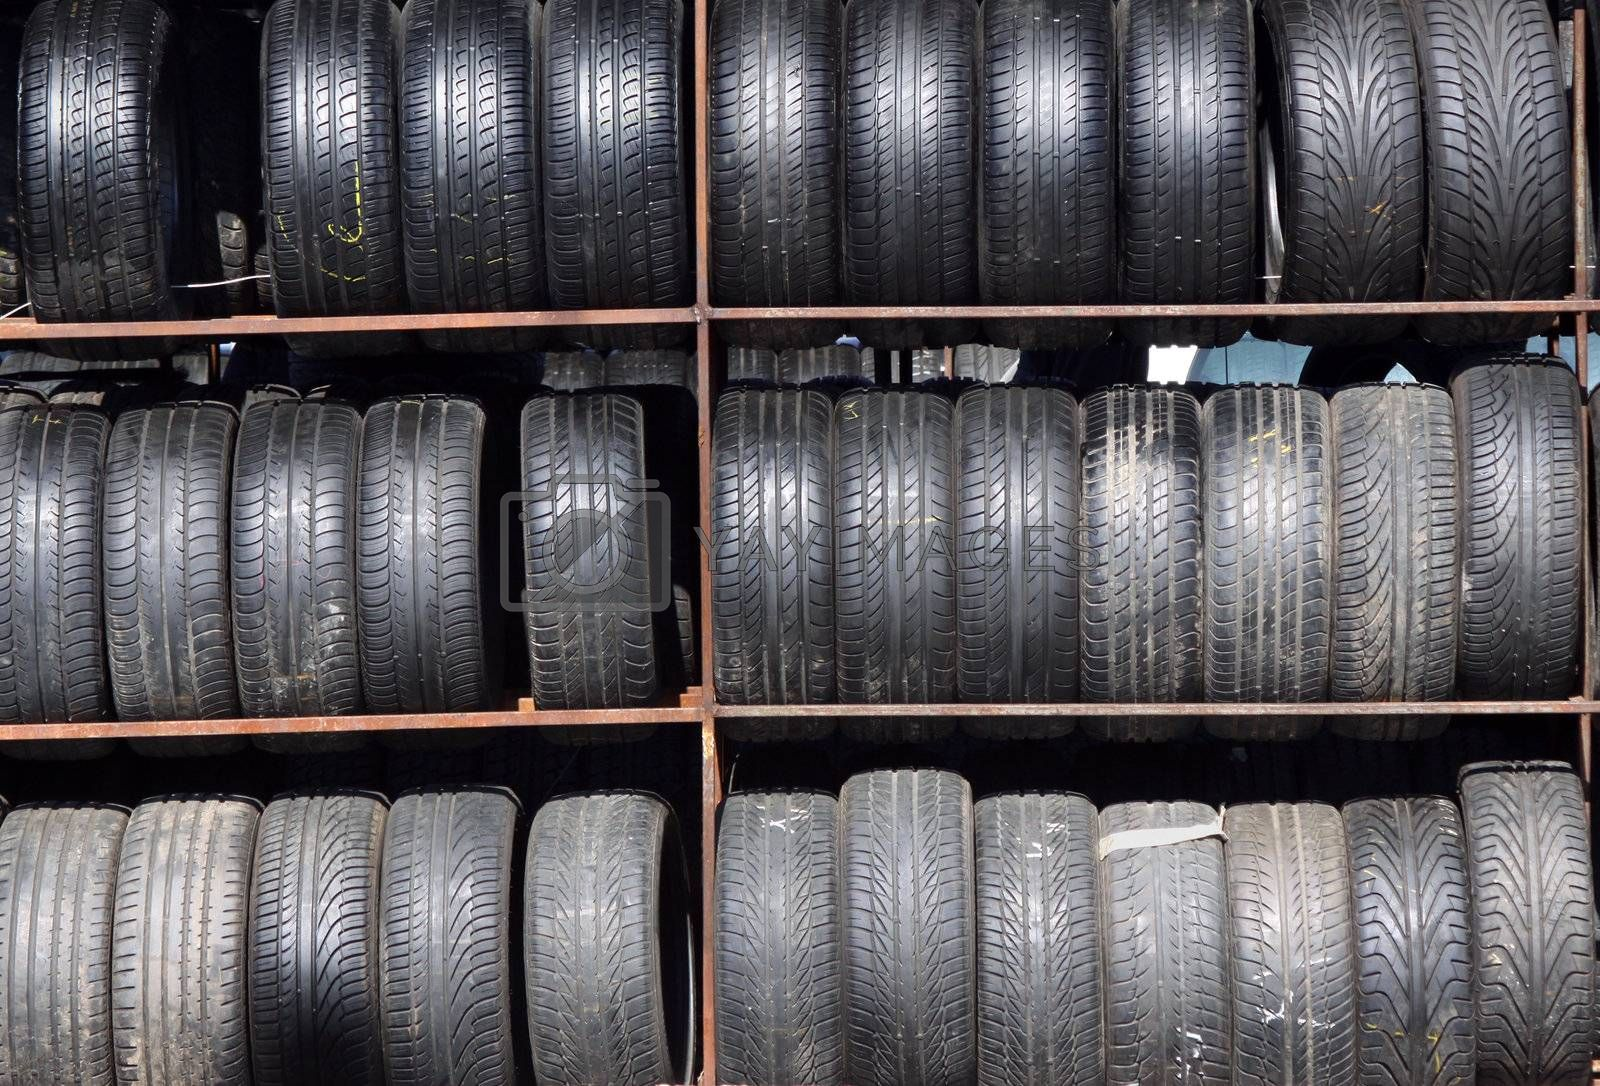 Old car tyres stacked on the rack